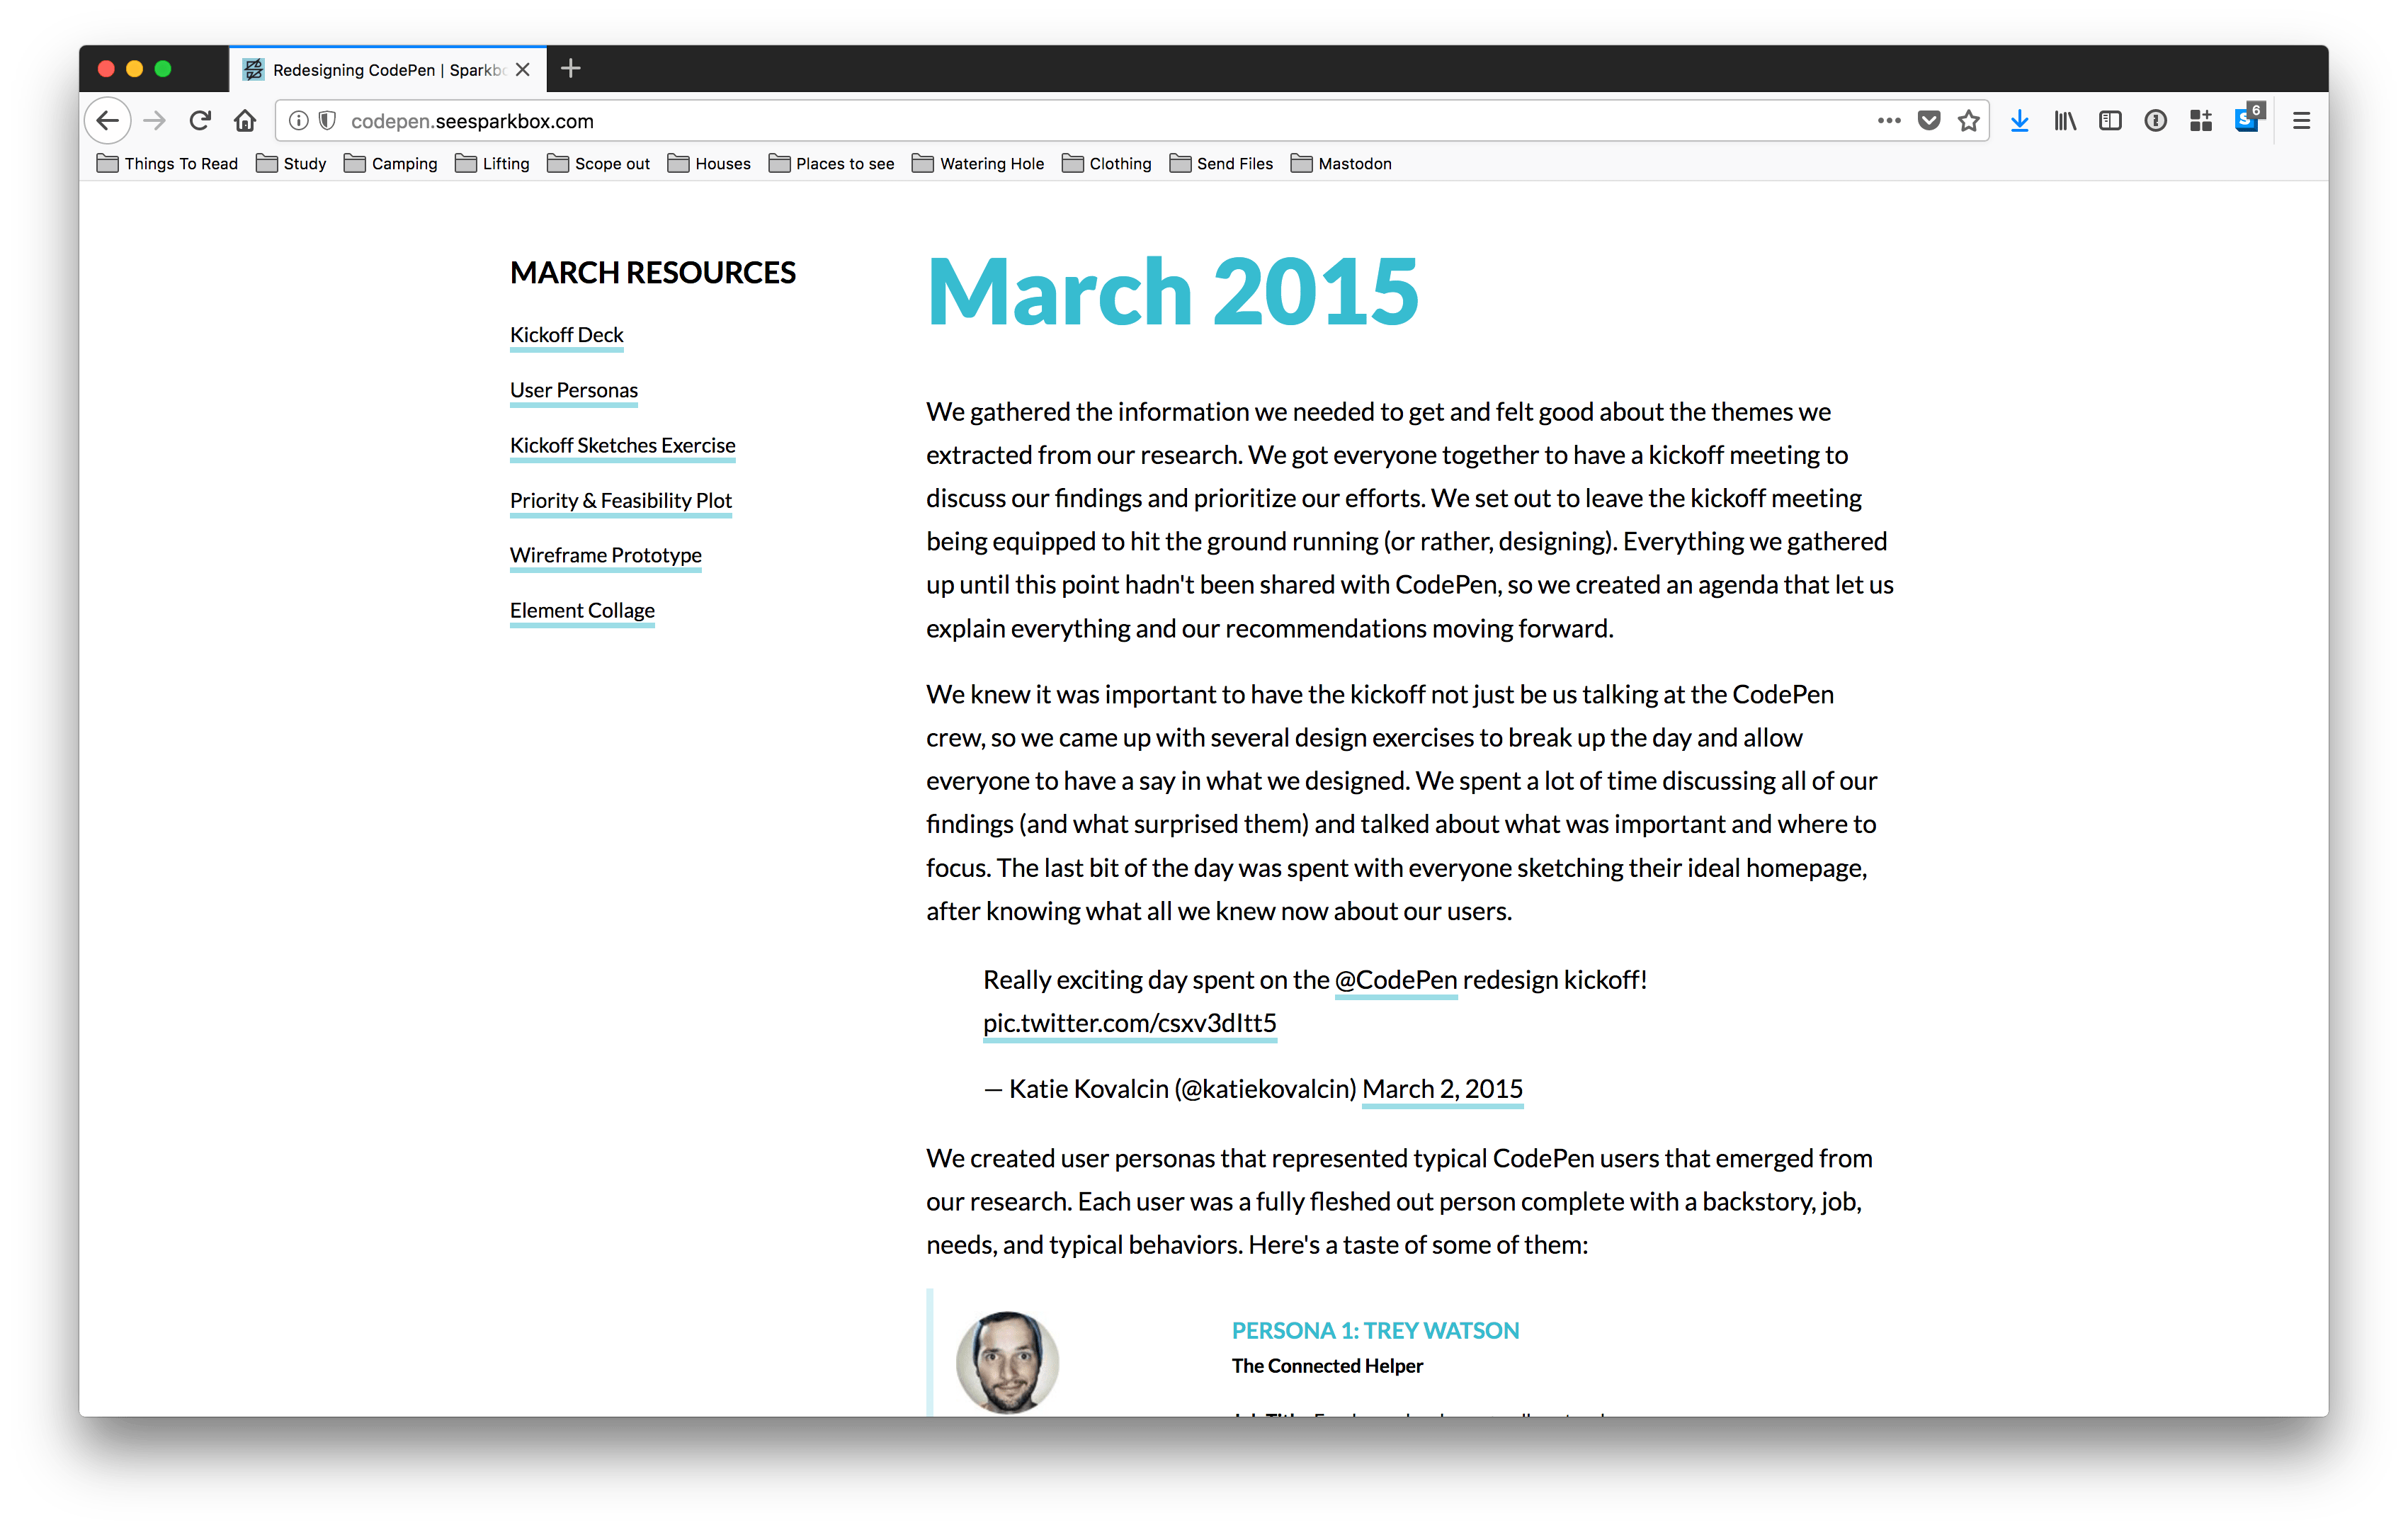 Image: This is a screenshot of the Codepen and Sparkbox collaboration. It shows all the different things that they did in March.